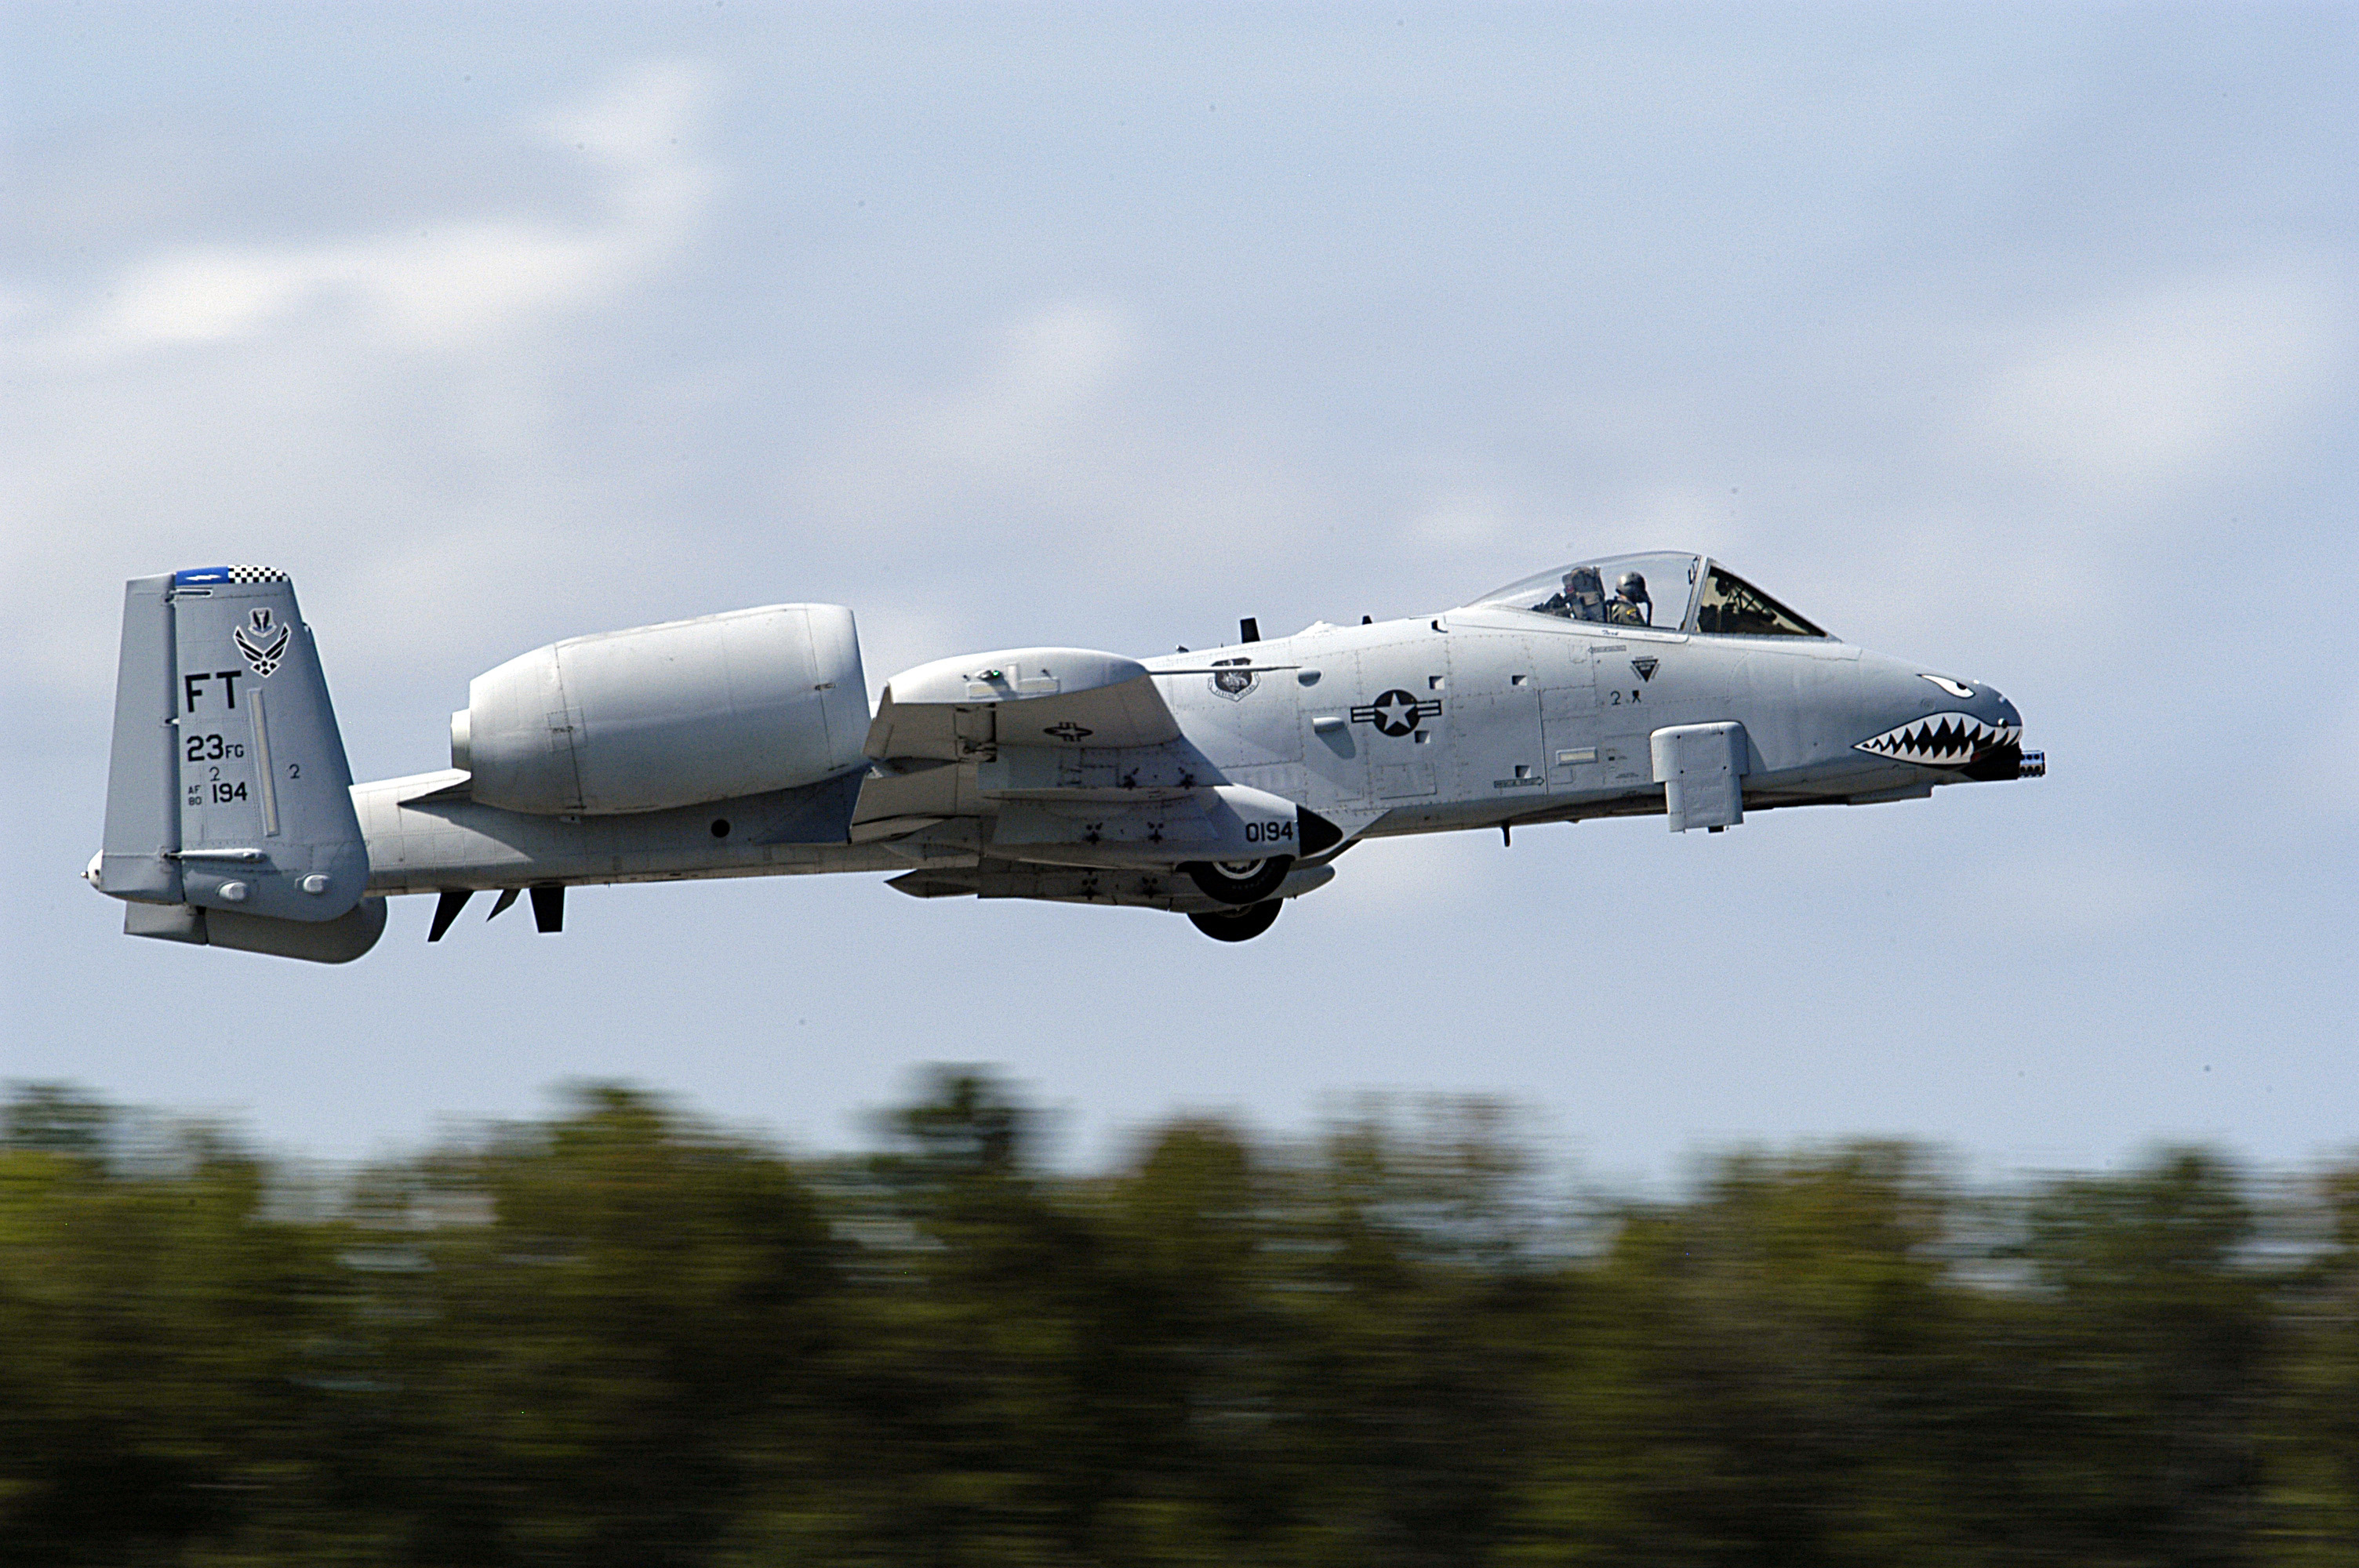 File:A-10 Thunderbolt 040925-N-0295M-087.jpg - Wikimedia Commons